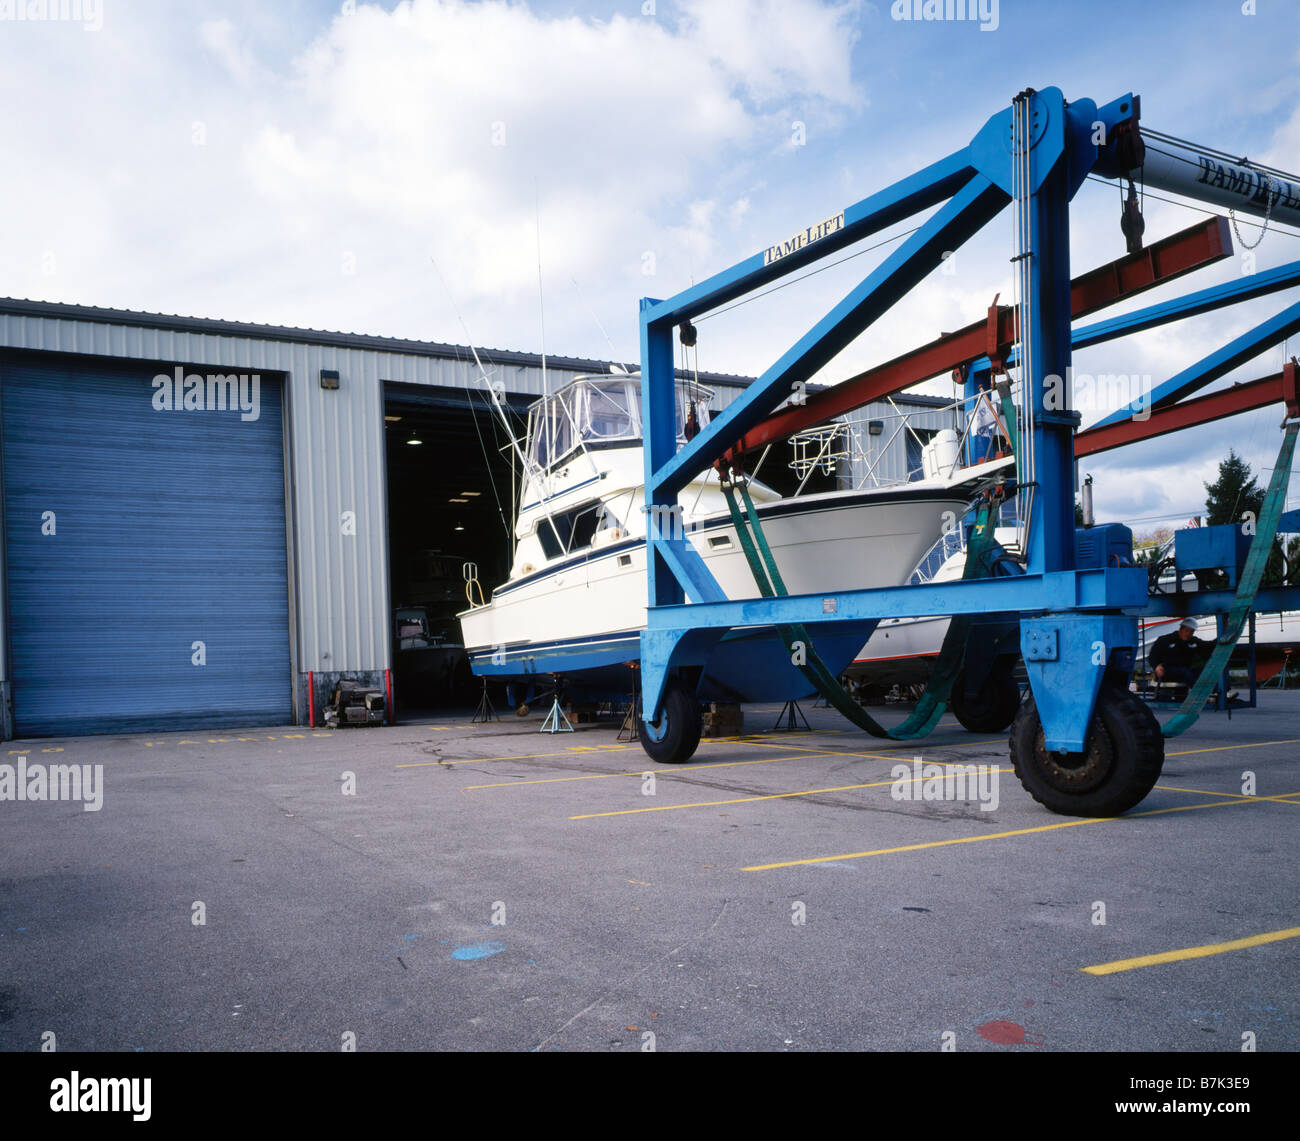 Tami lift hoist for hauling and moving boats at marinas for Boat garage on water